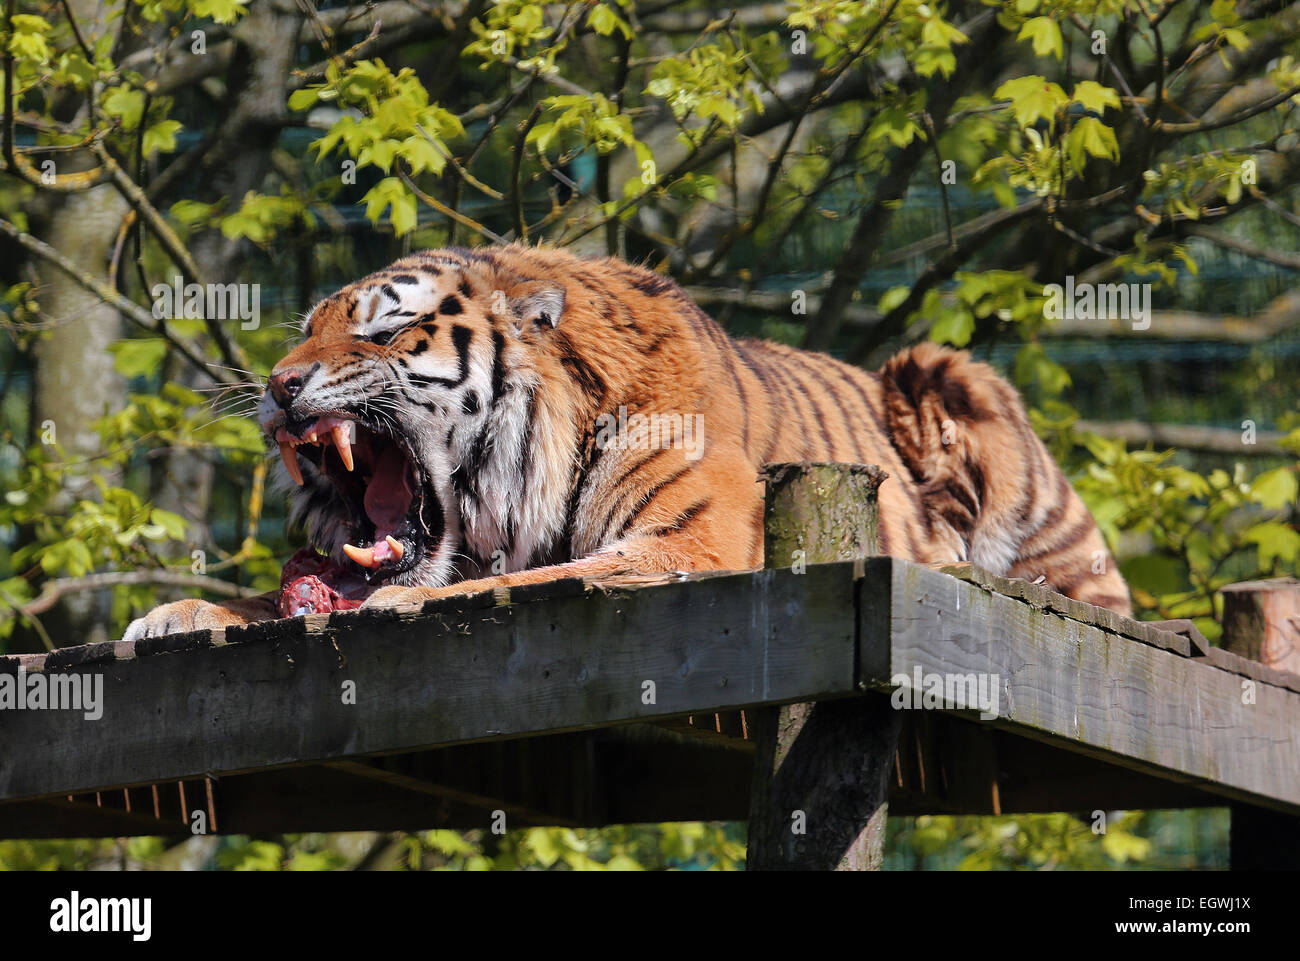 Amur Tiger roars as it protects it's lunch - Stock Image